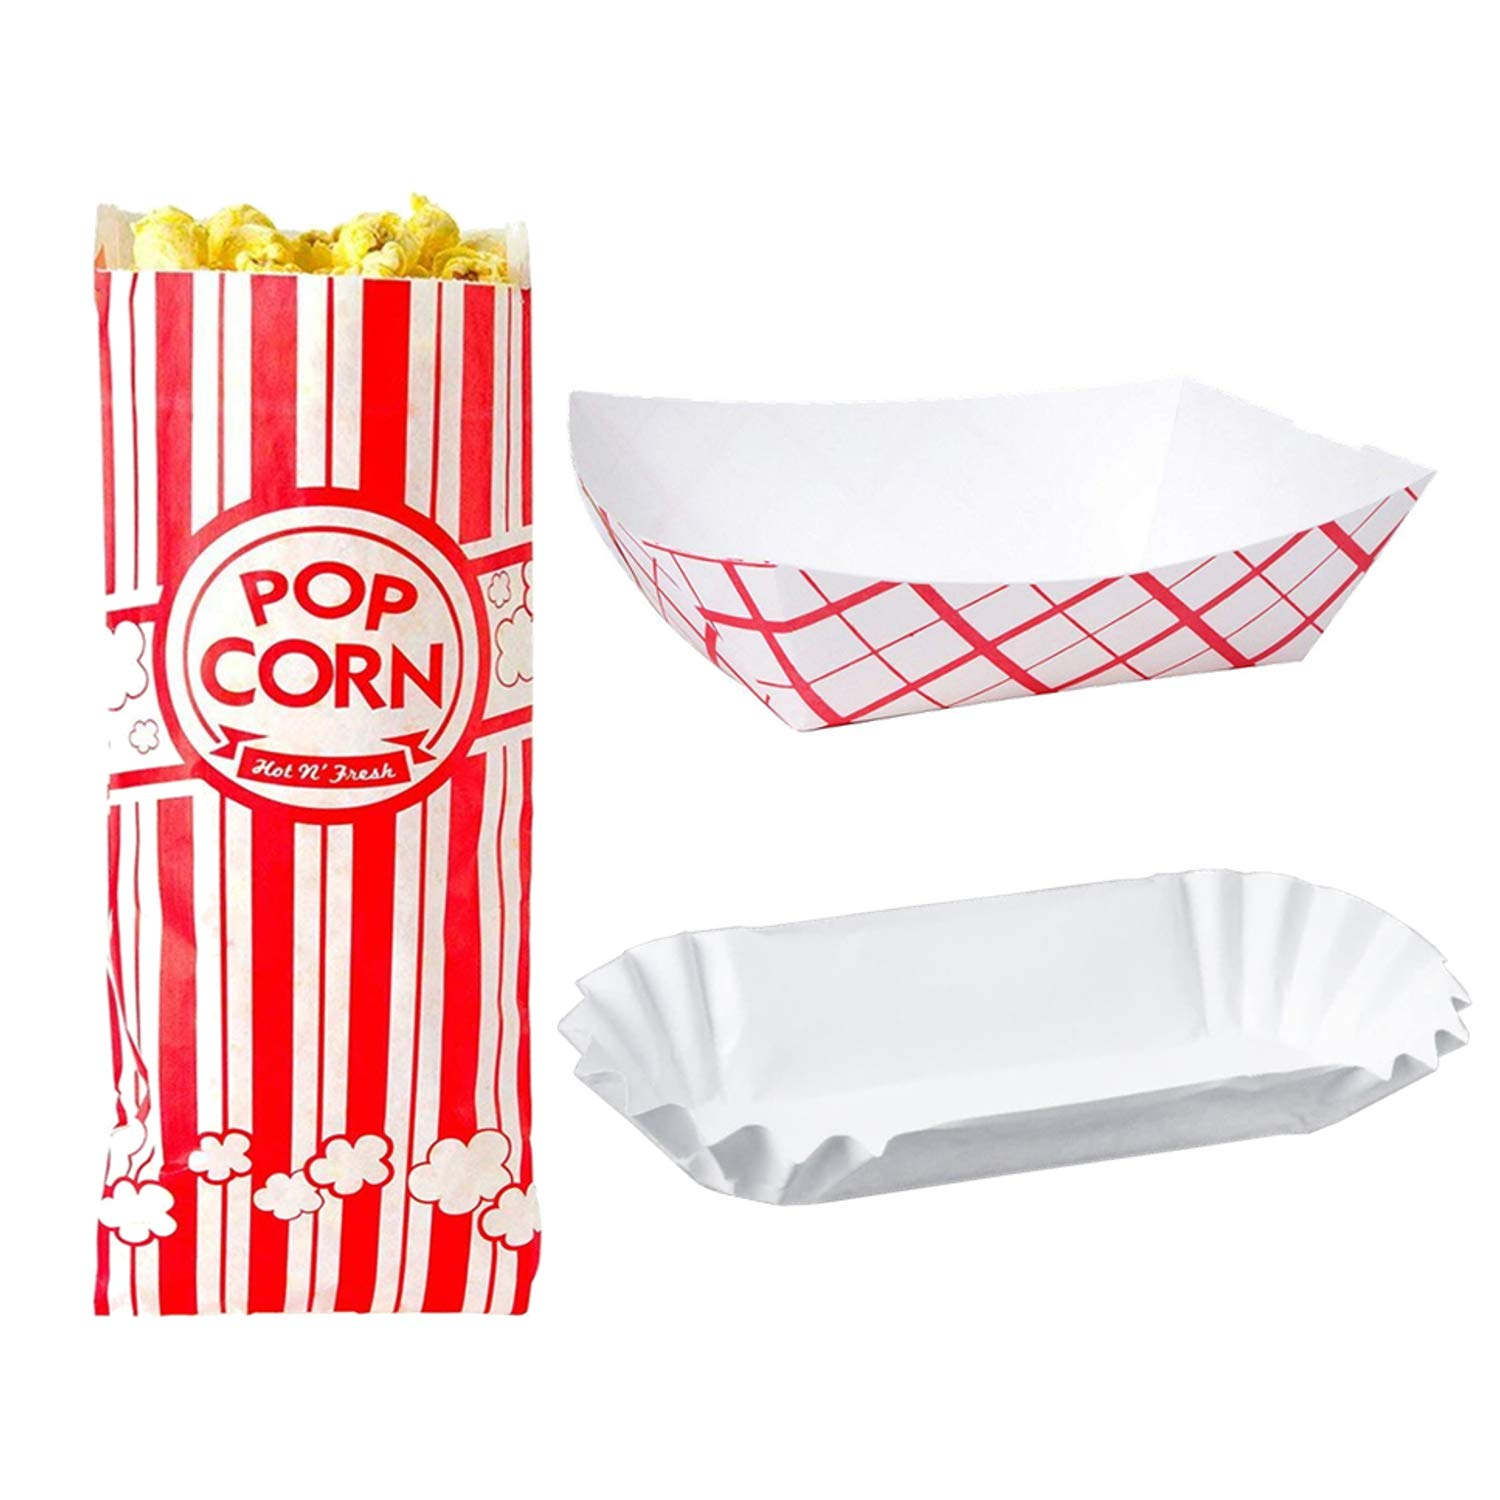 Disposable Paper Food Tray Variety Bundle. Holds Nachos, Fries, Hot Corn Dogs, and More! 100 of Each. (Food Trays, Fluted Hot Dog Trays, and Popcorn Bags)